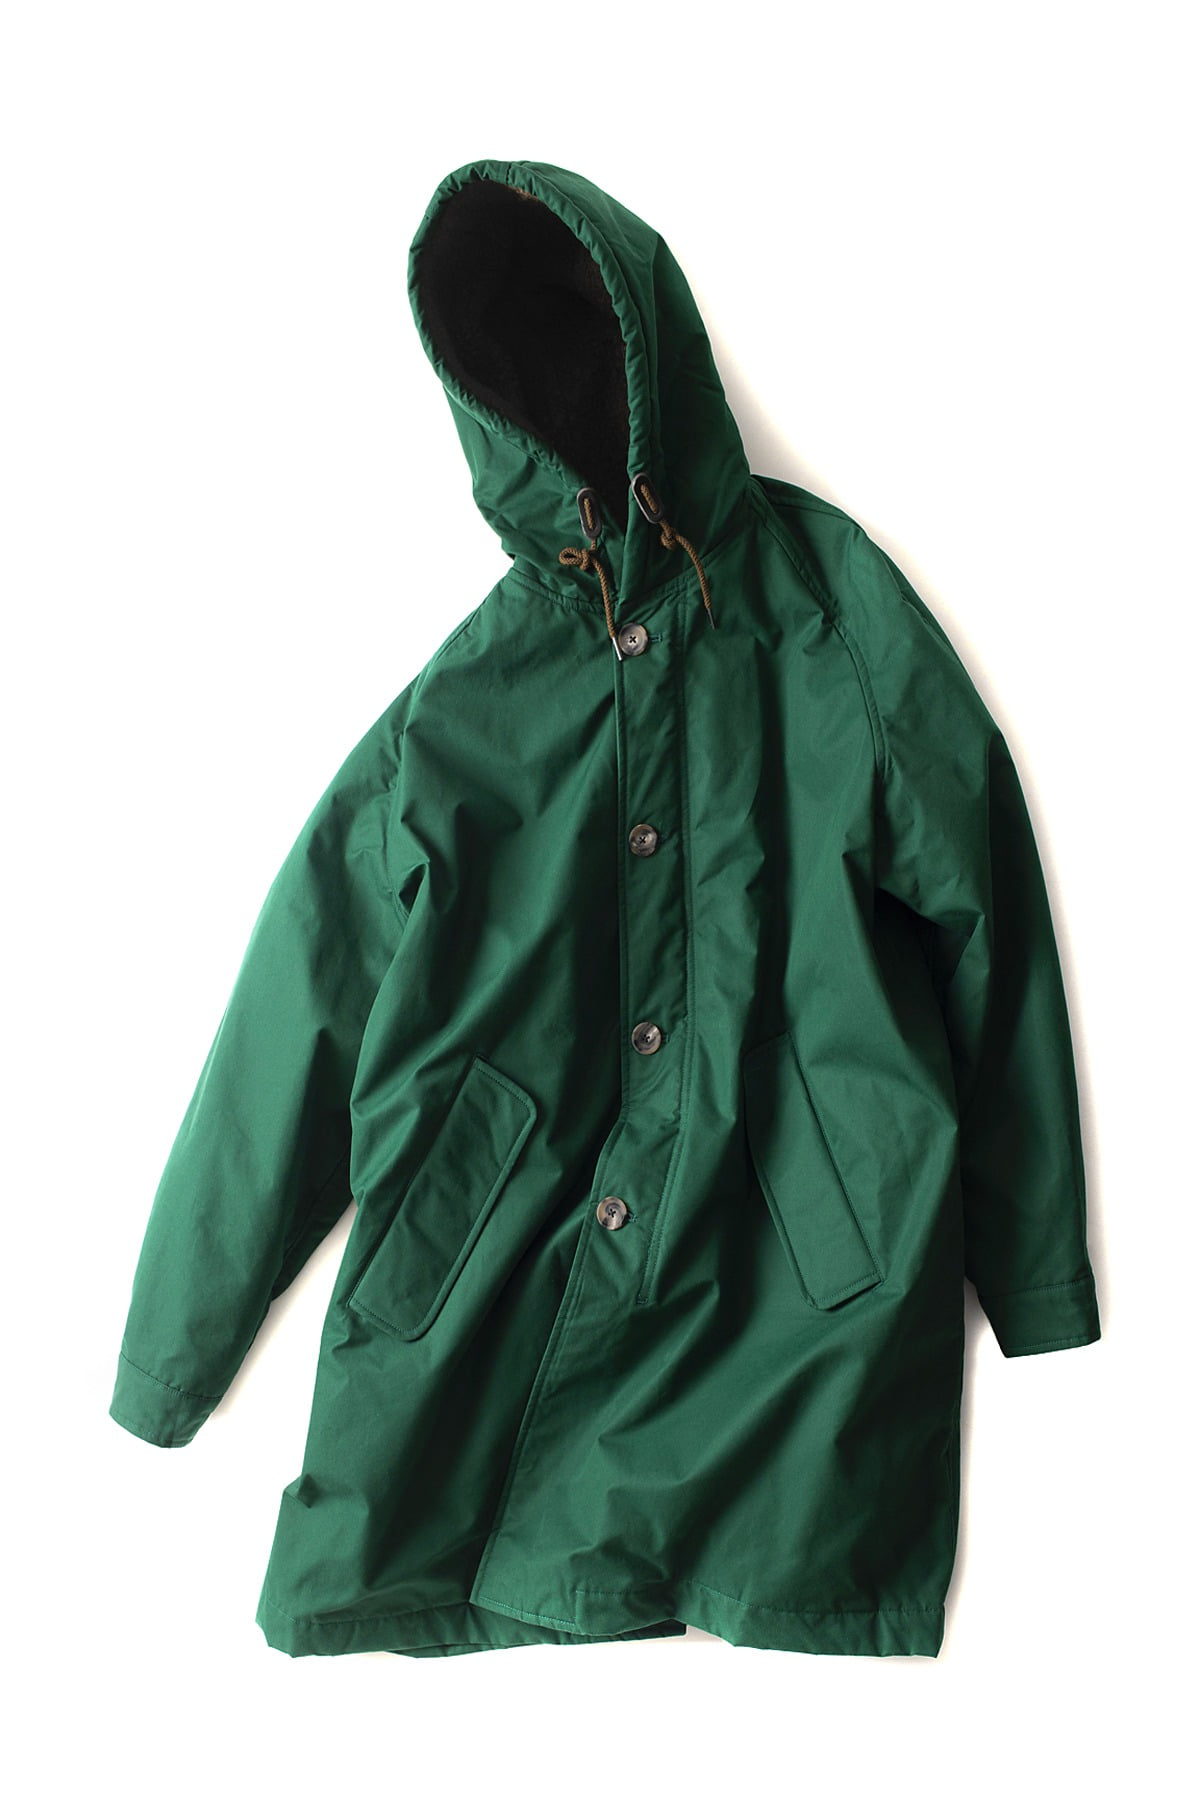 Scye : High Density Cotton Cloth Padding Big Parka (Green)